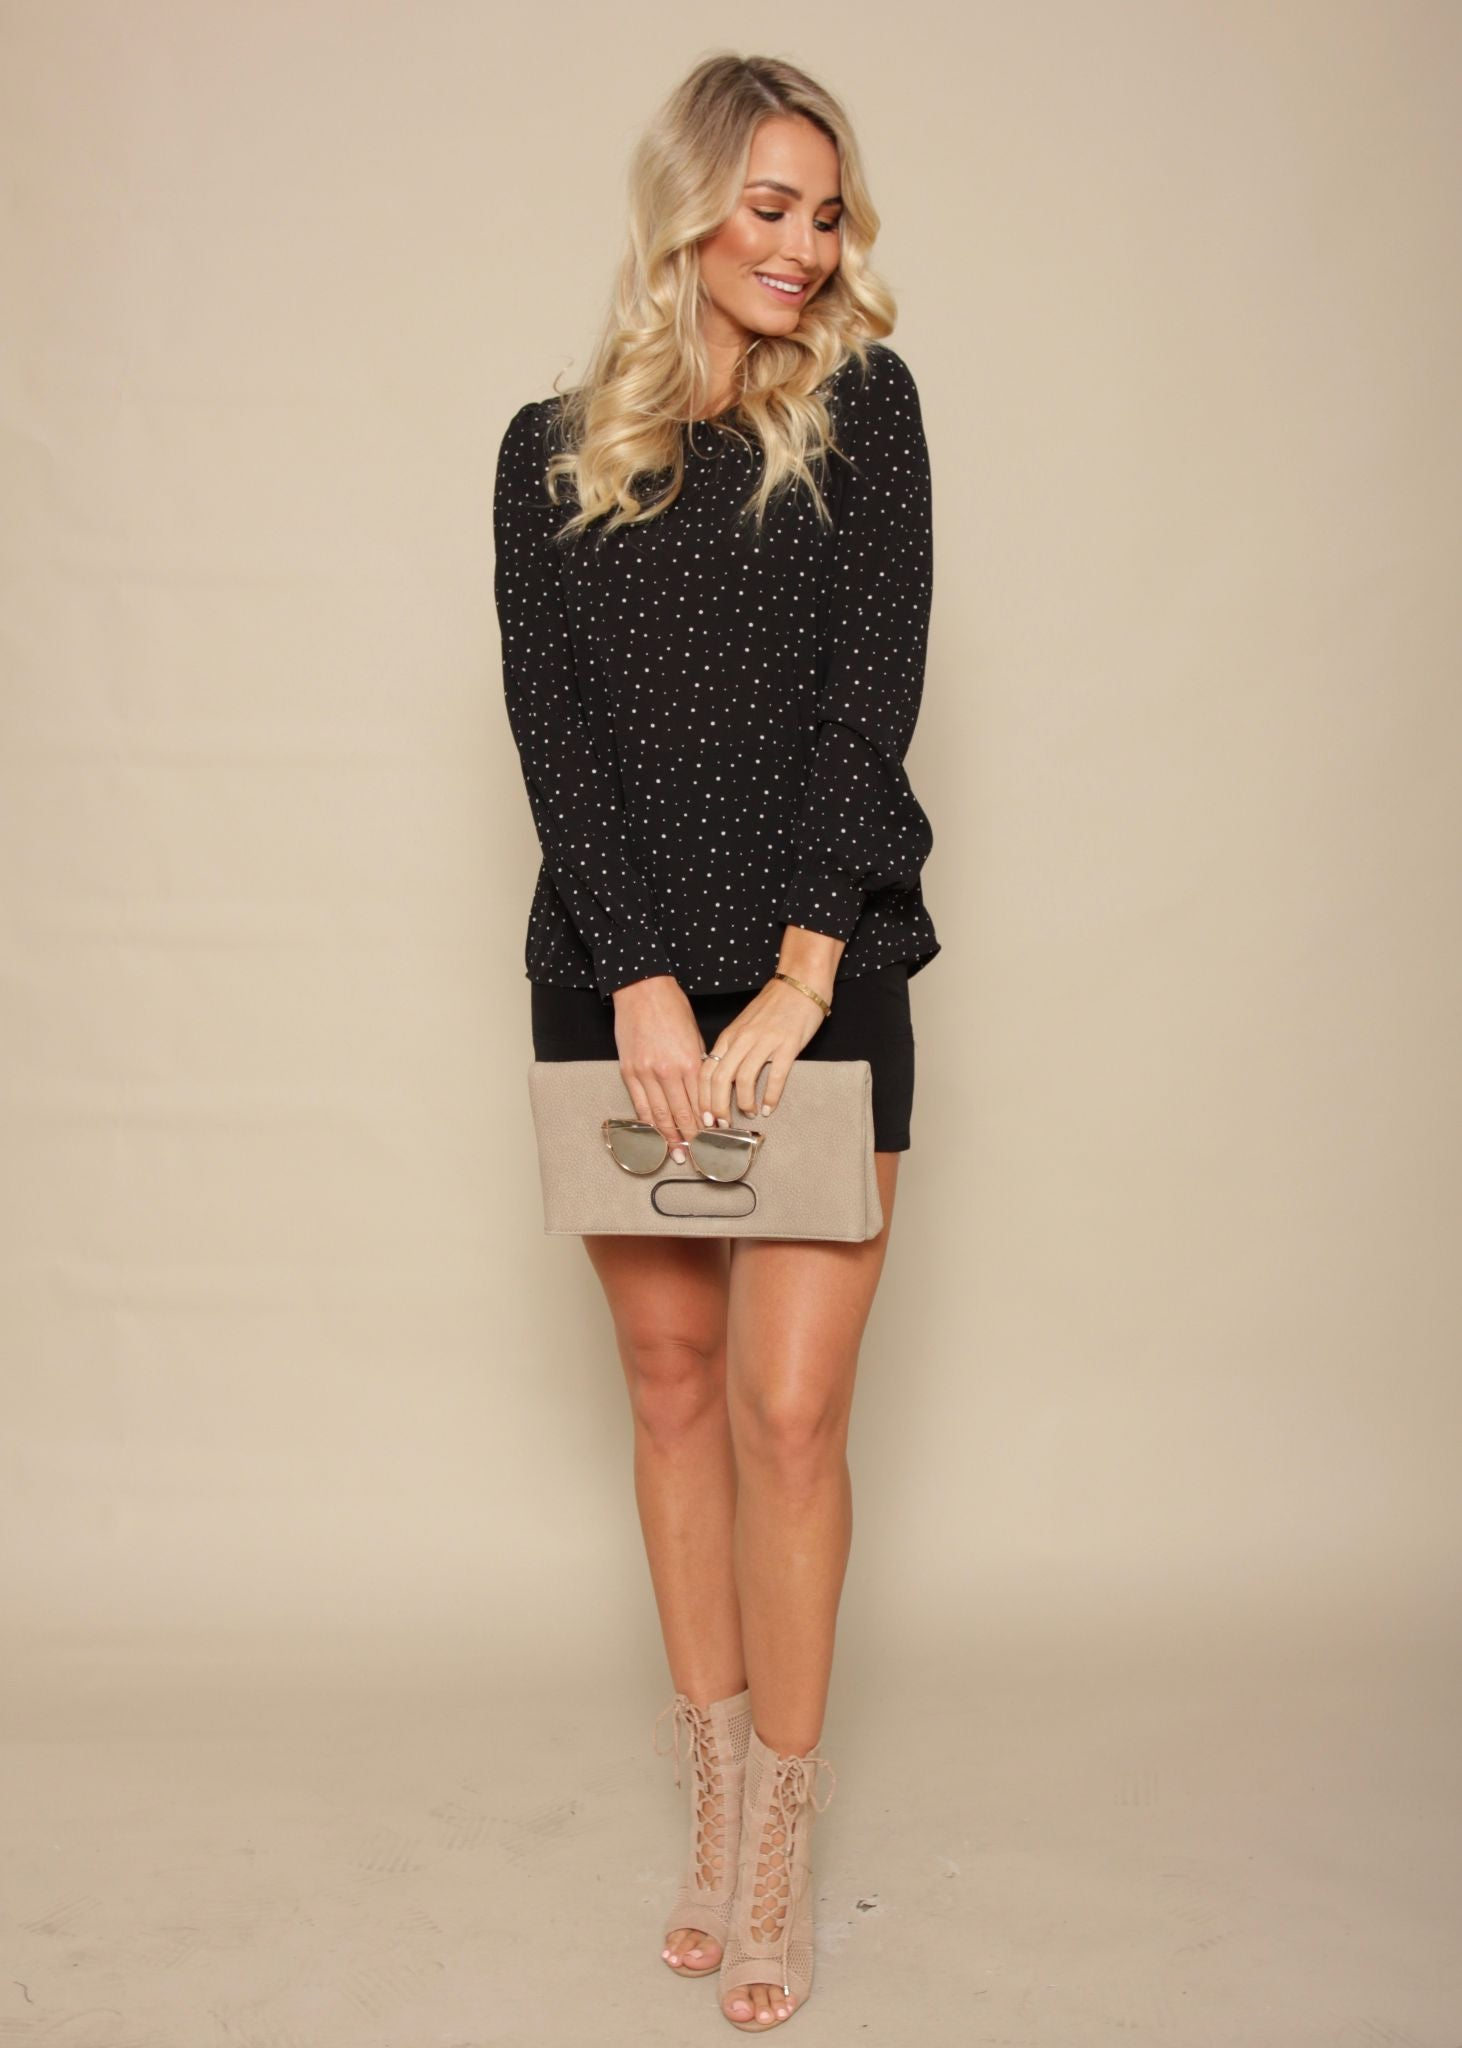 Peace Of You Blouse - Black Polka